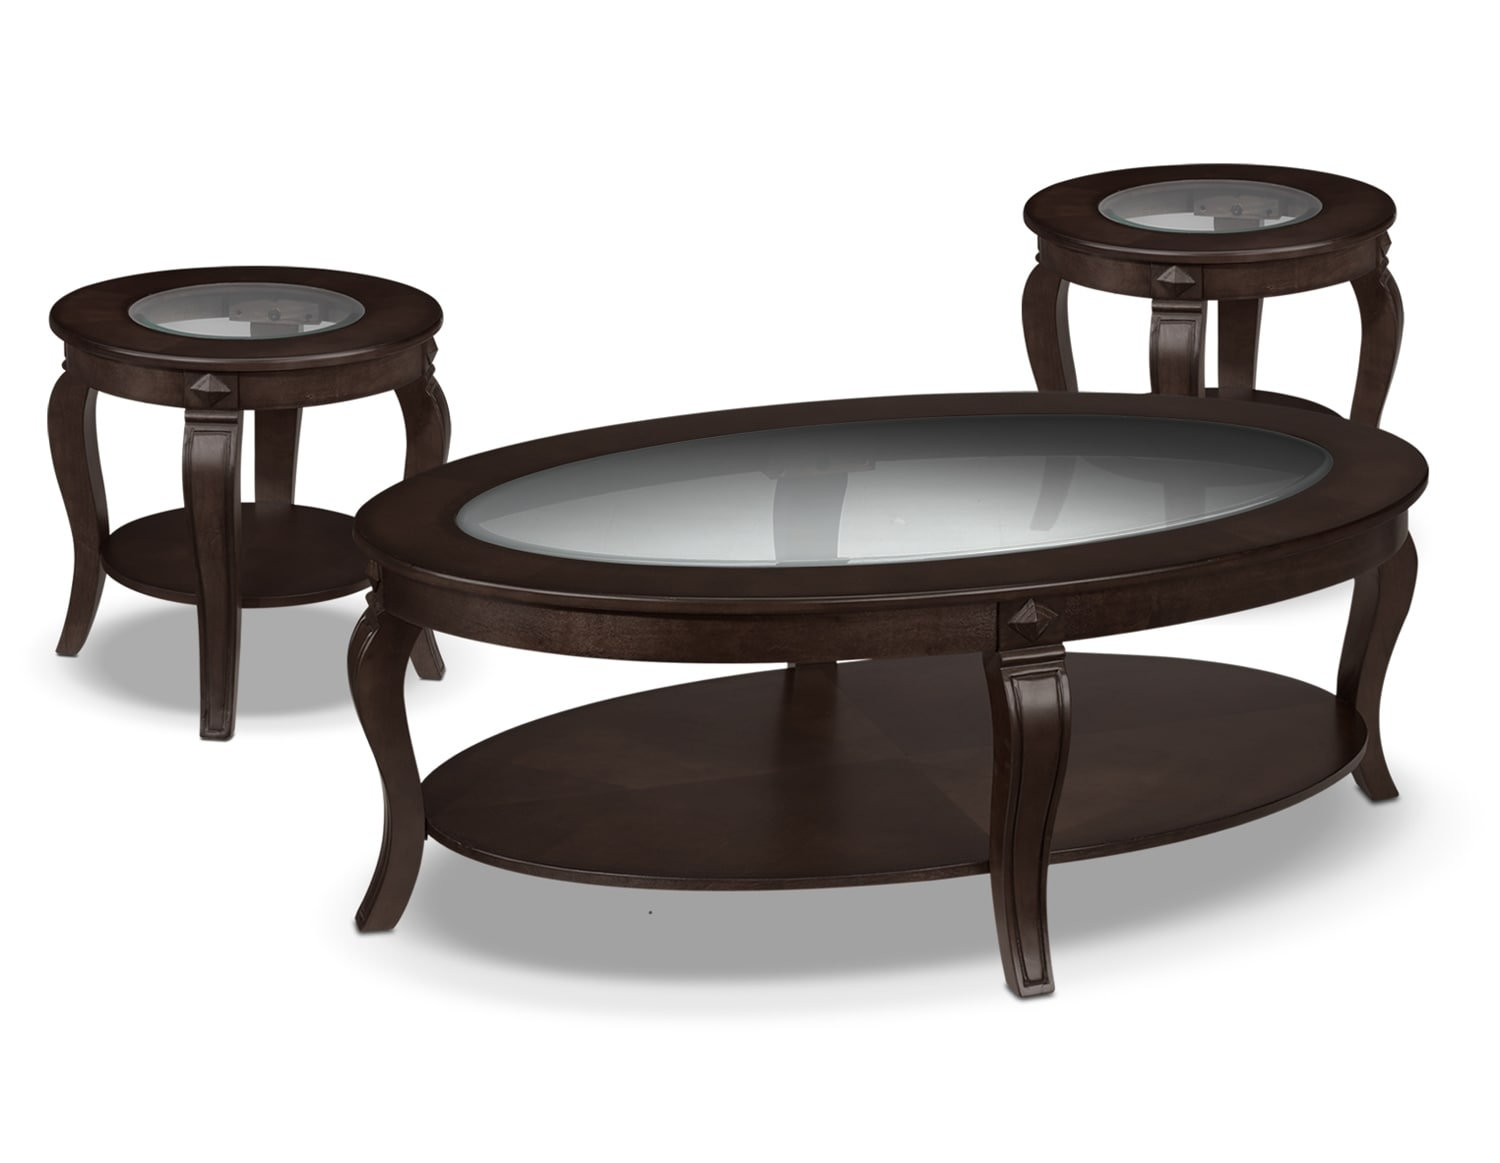 Madeira Coffee Table and Two End Tables - Chocolate